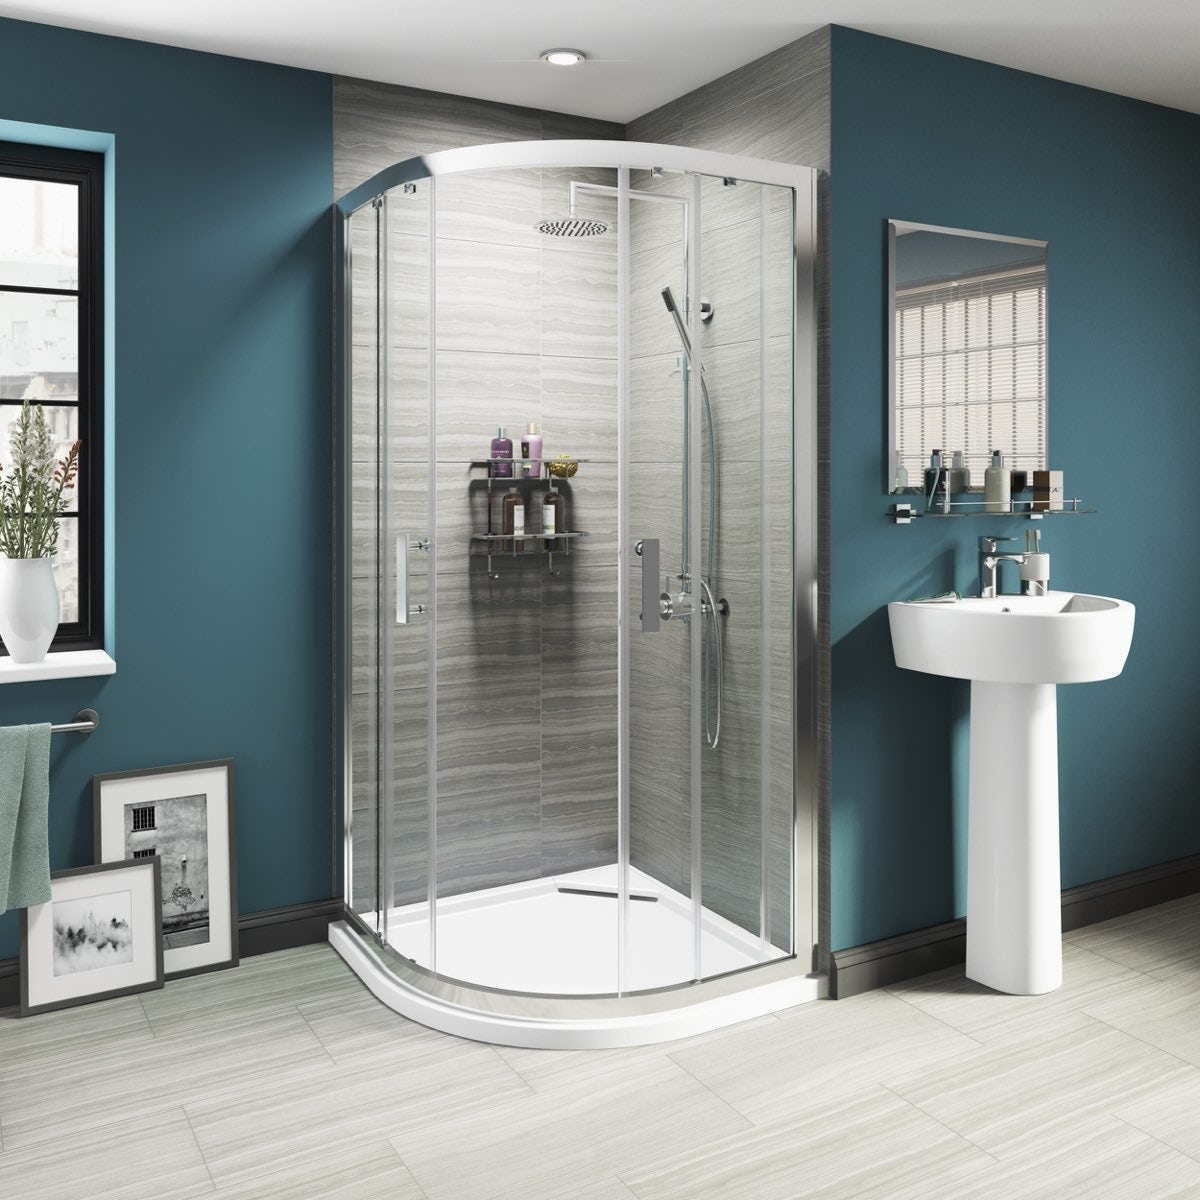 What To Consider When Choosing A Shower Enclosure - Alternative to tiles in shower cubicle